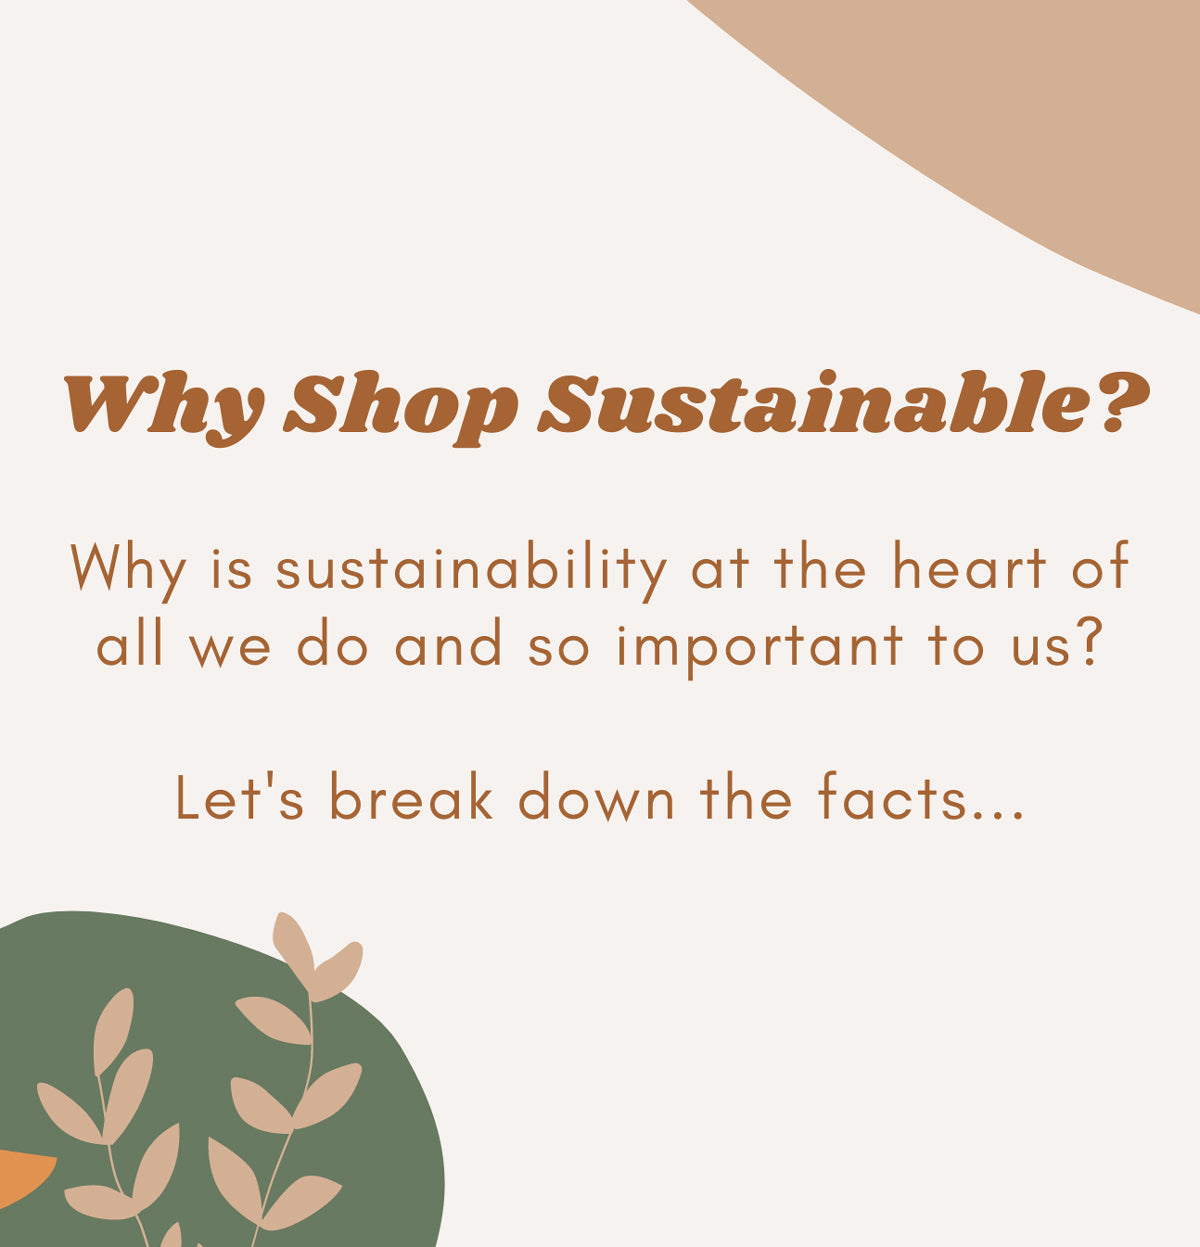 Why Shop Sustainable